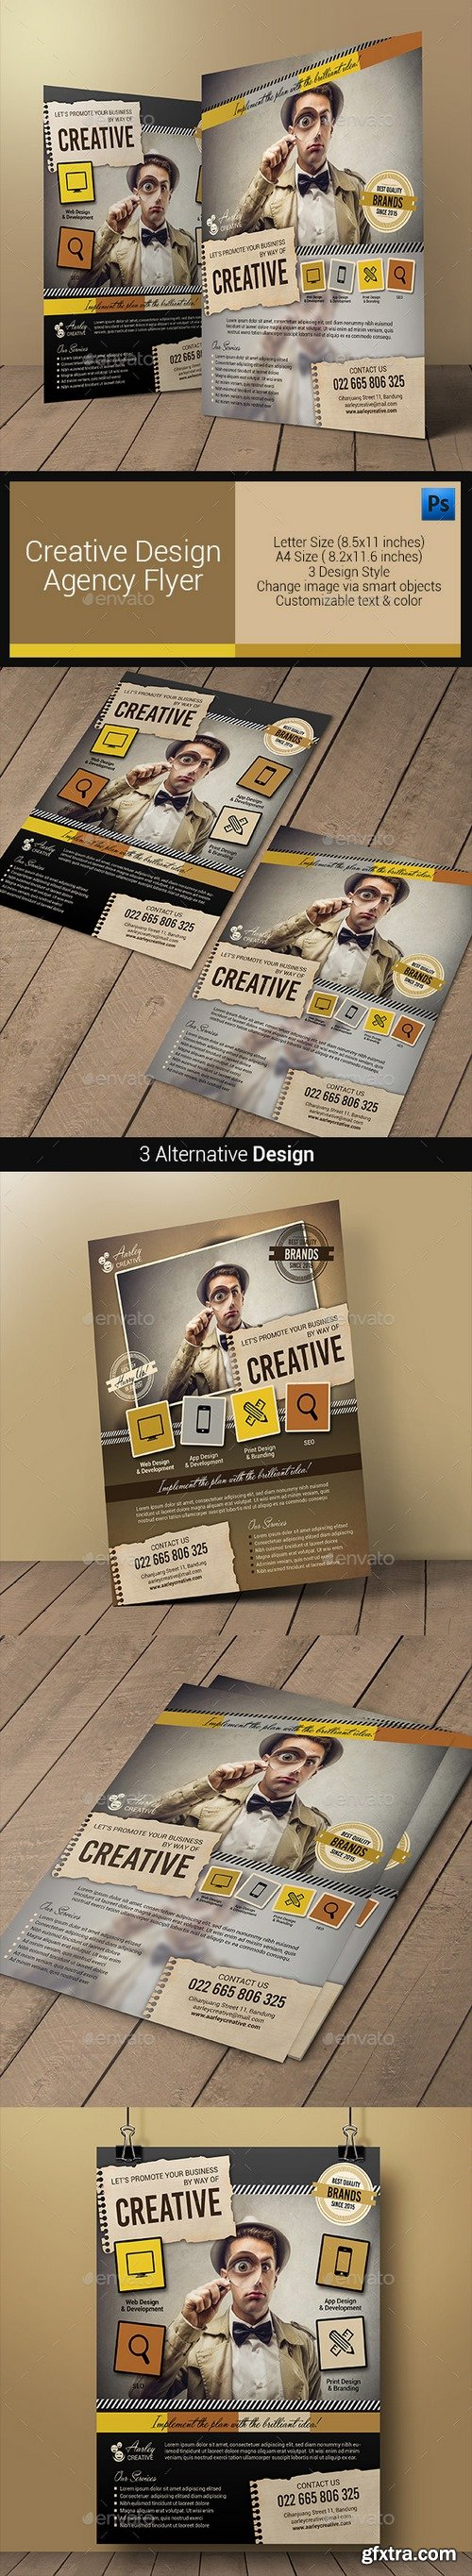 Graphicriver - Creative Design Agency Flyers 10880677